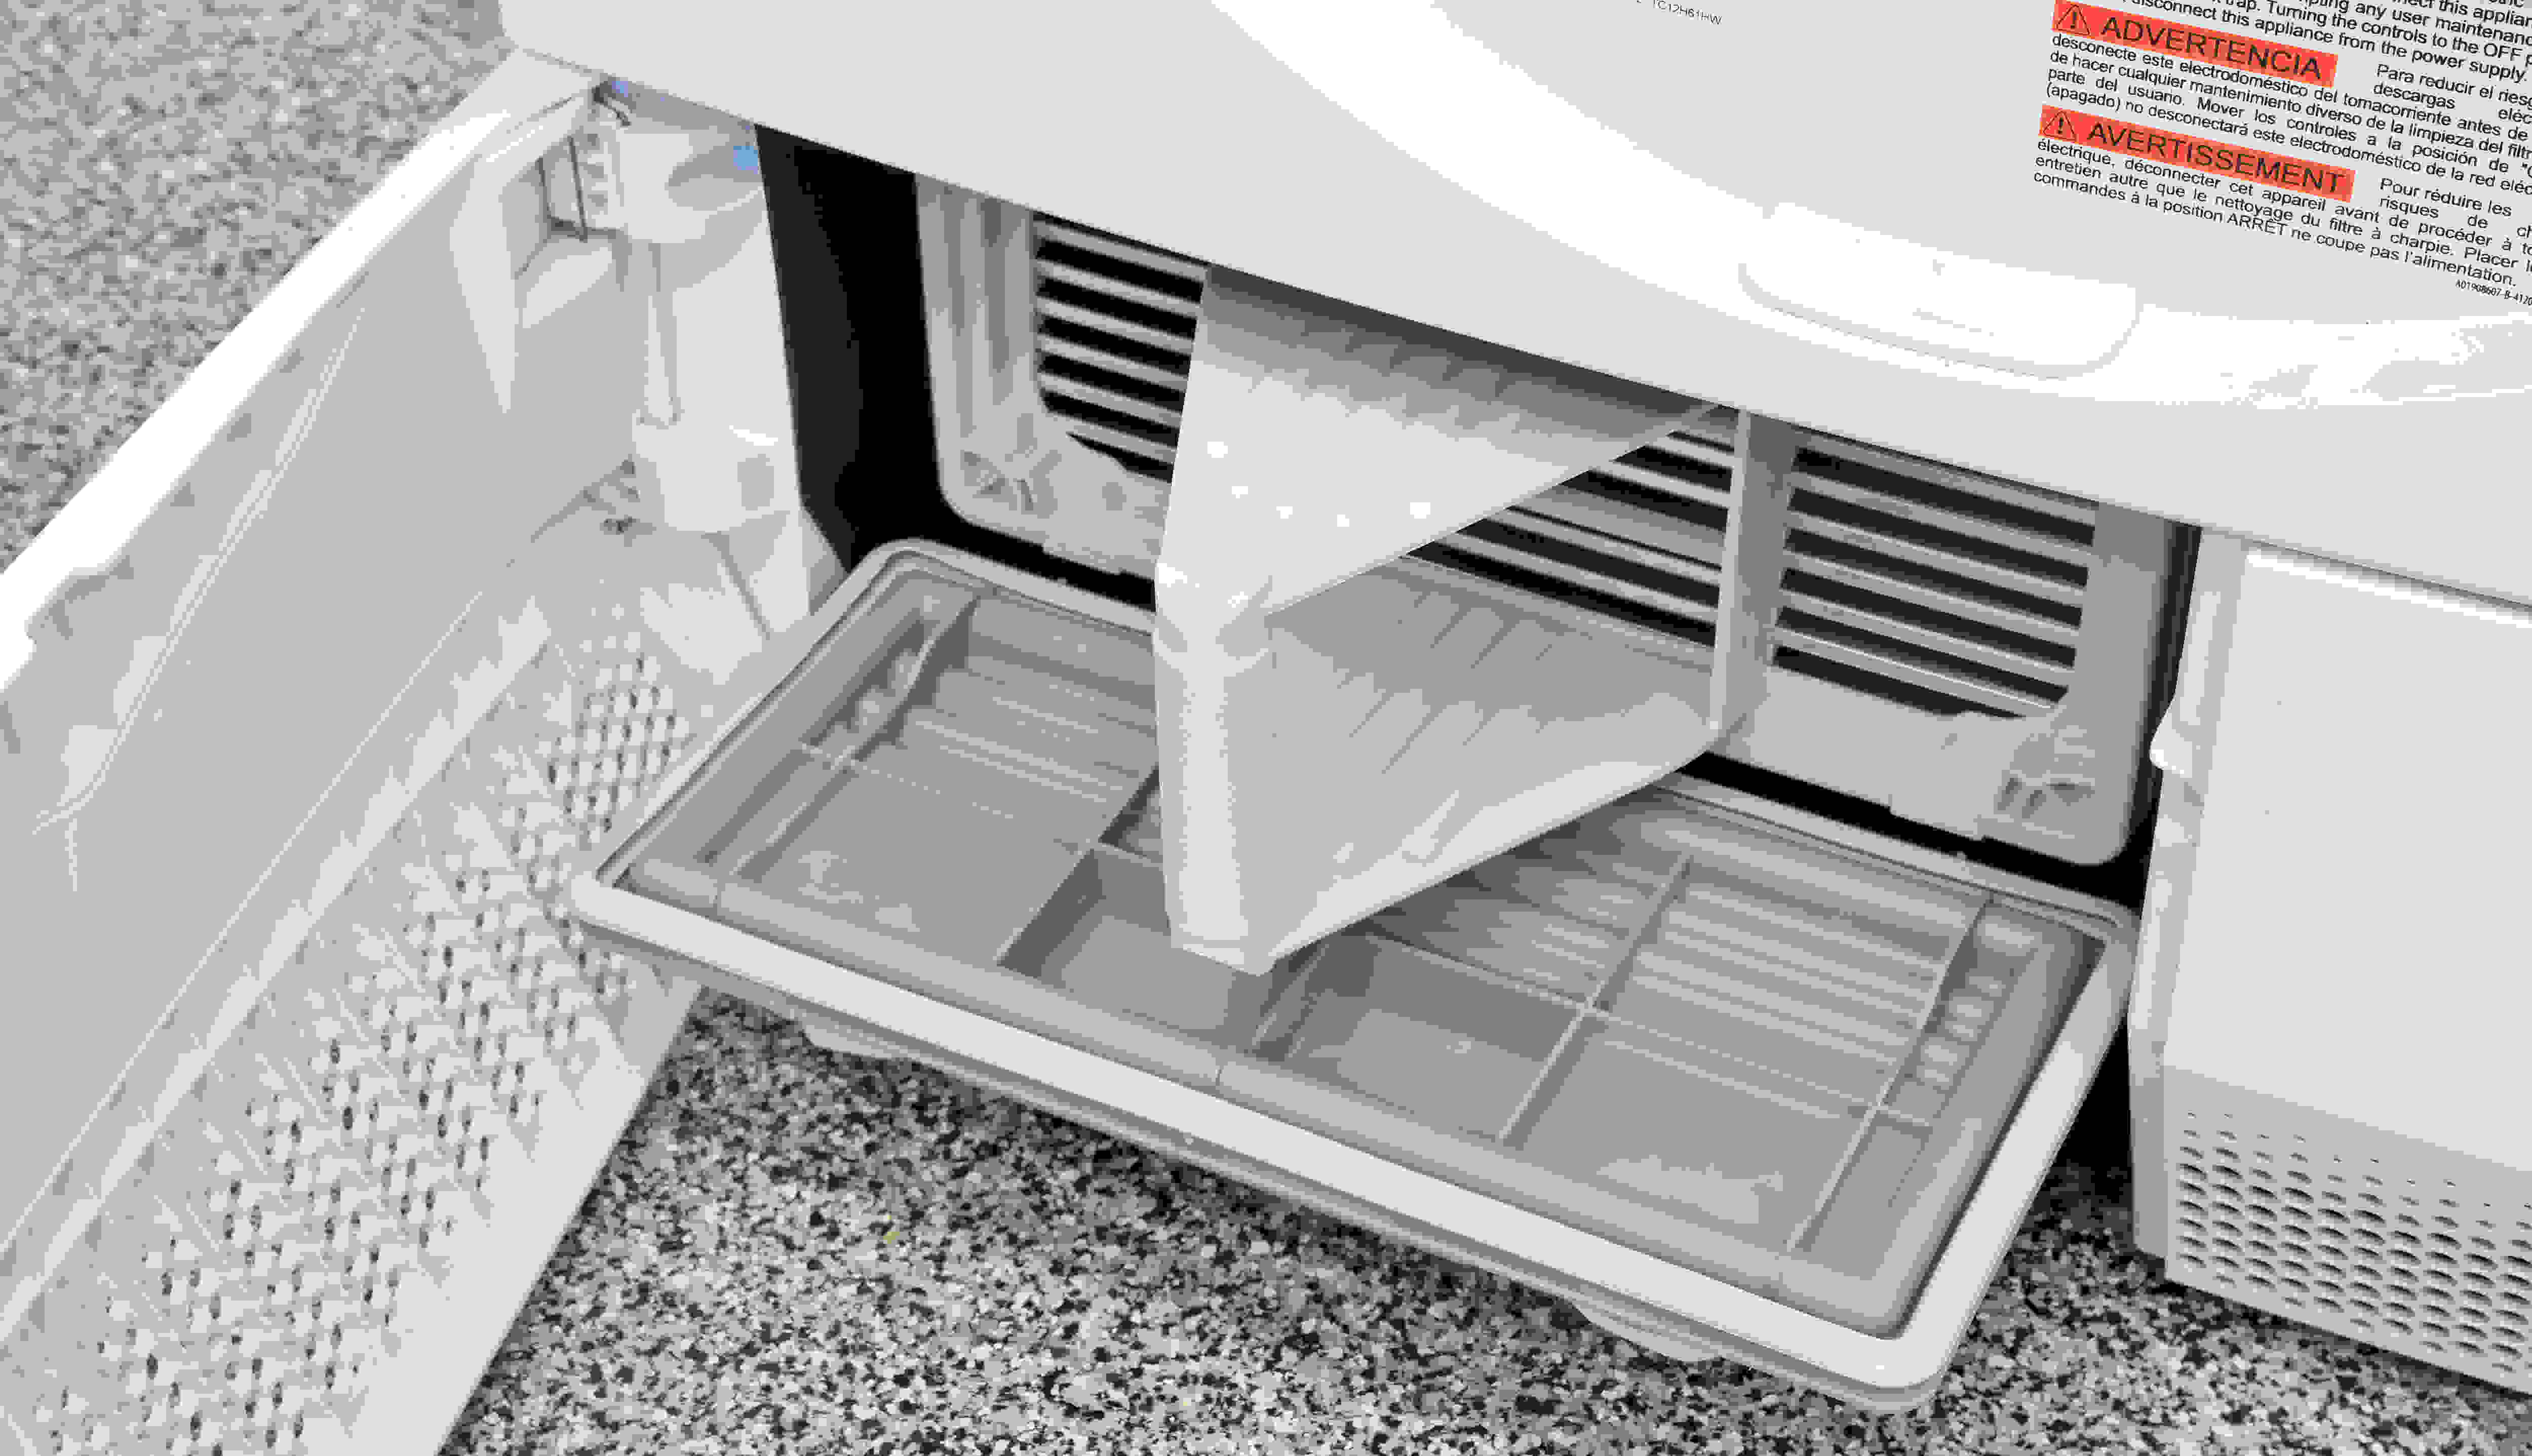 Once the secured panel has been released, pull the Electrolux EIED200QSW's condenser out by its handle.